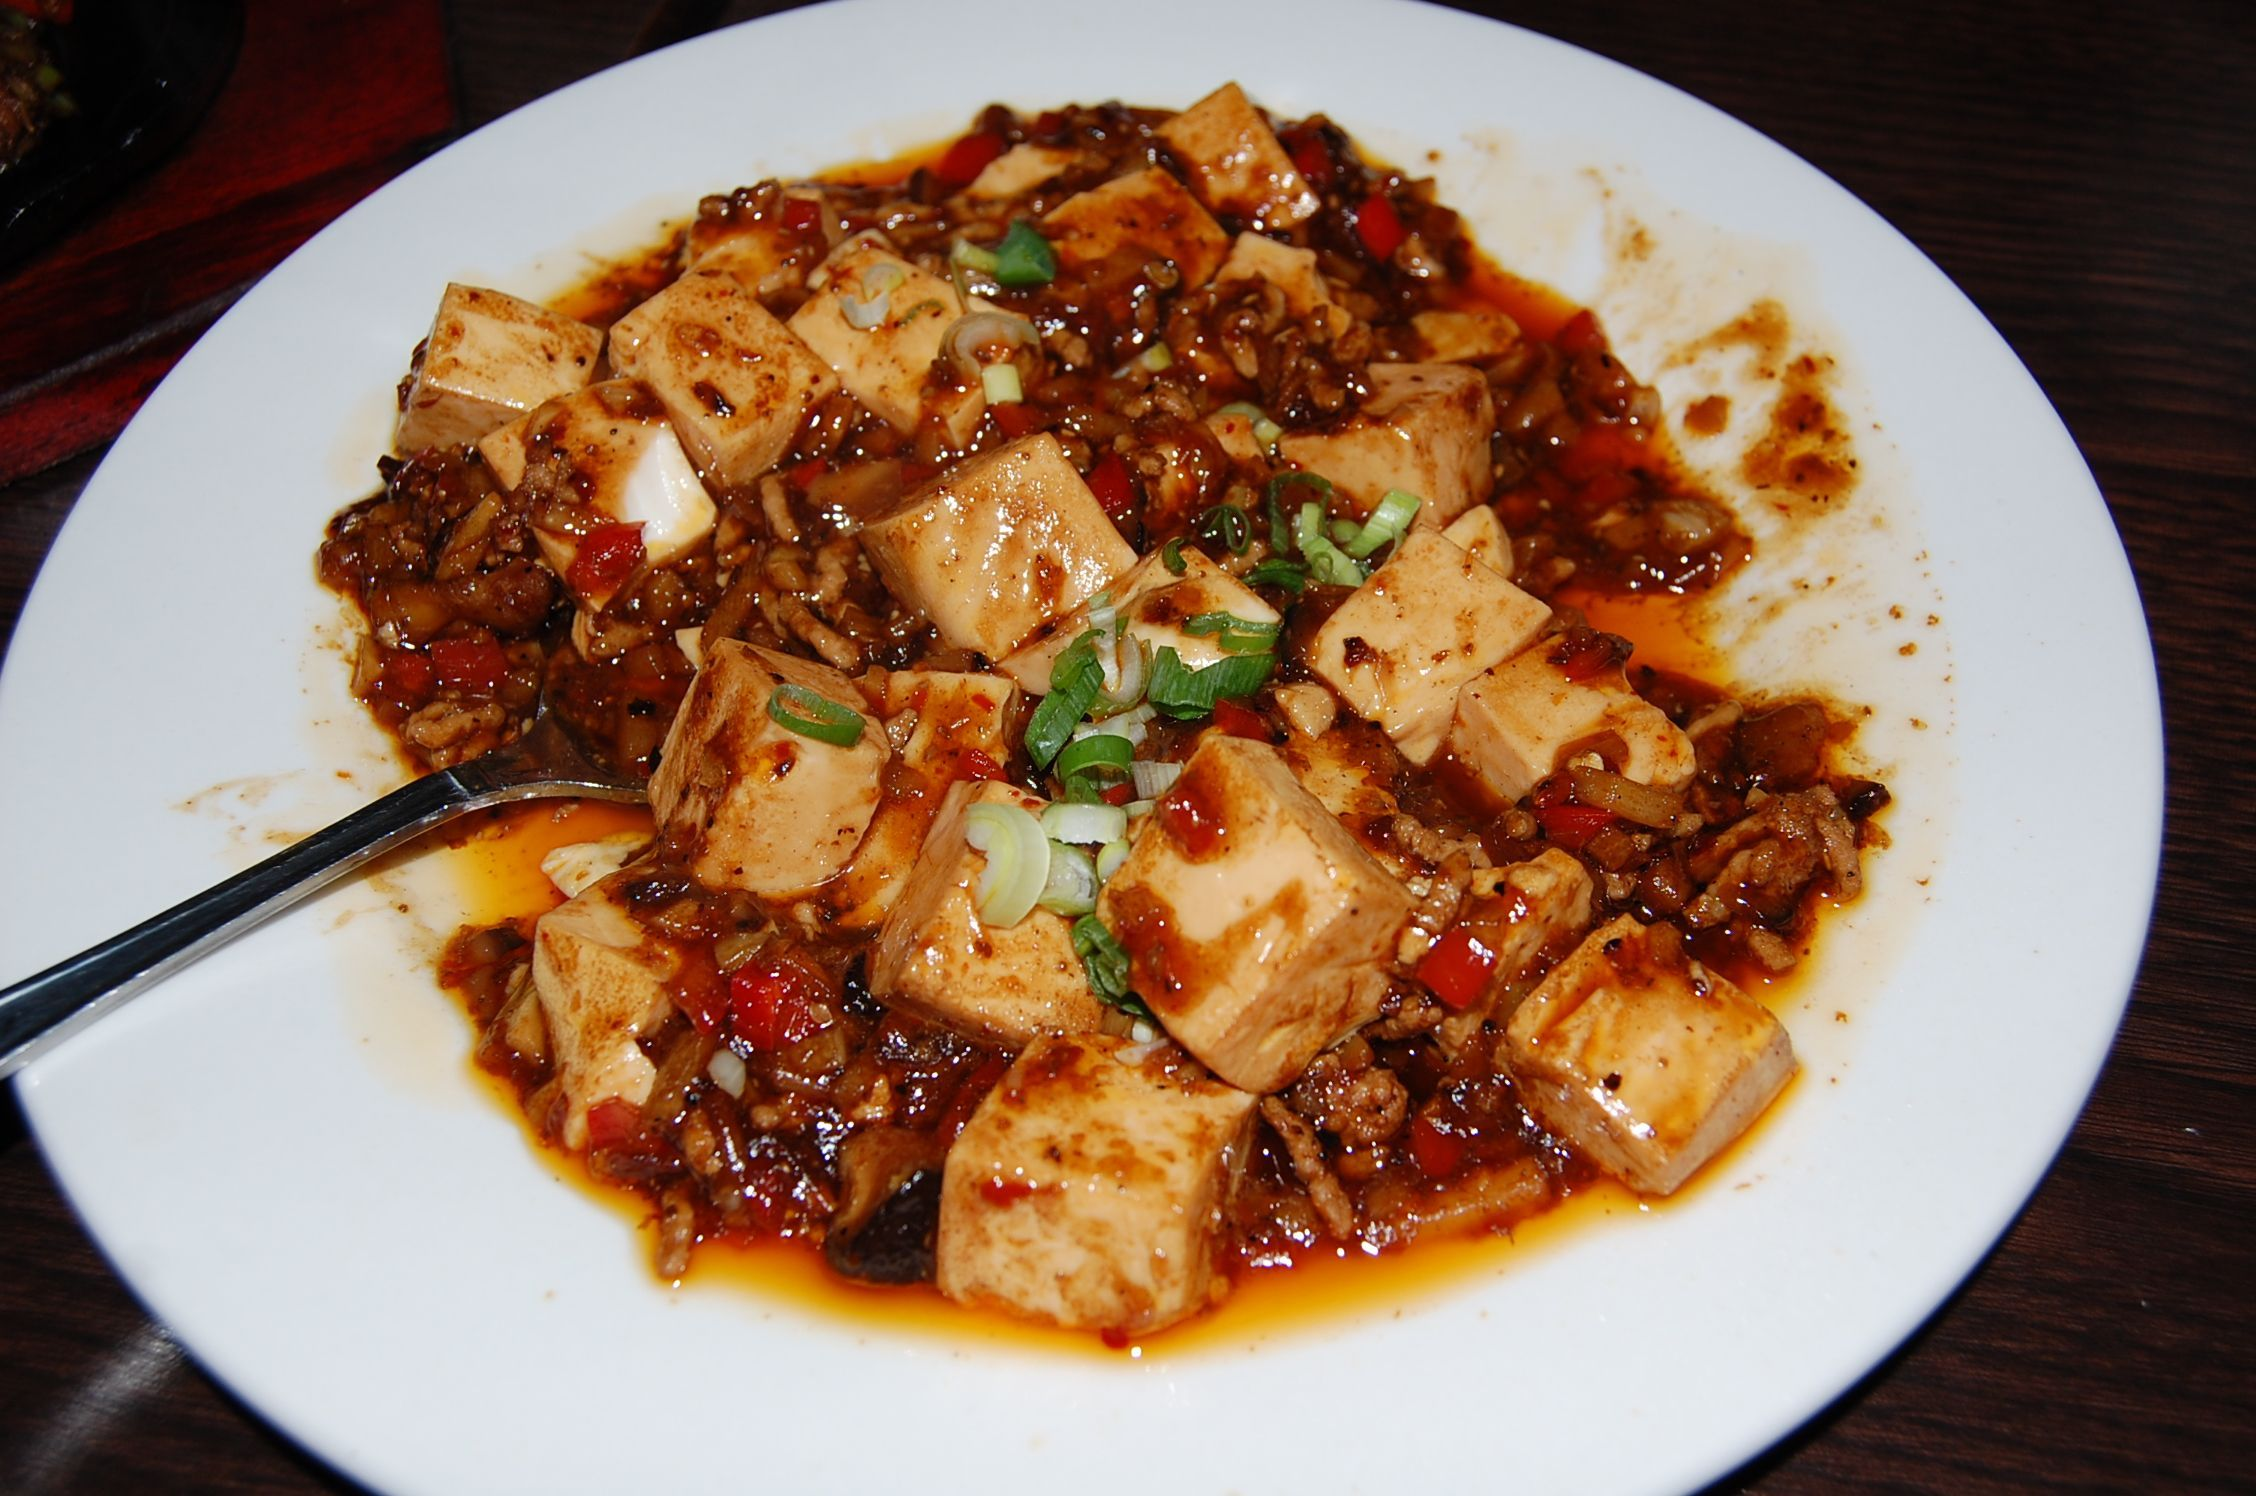 ... dofu mapo tofu recipe mapo tofu good food what is mabo mapo tofu